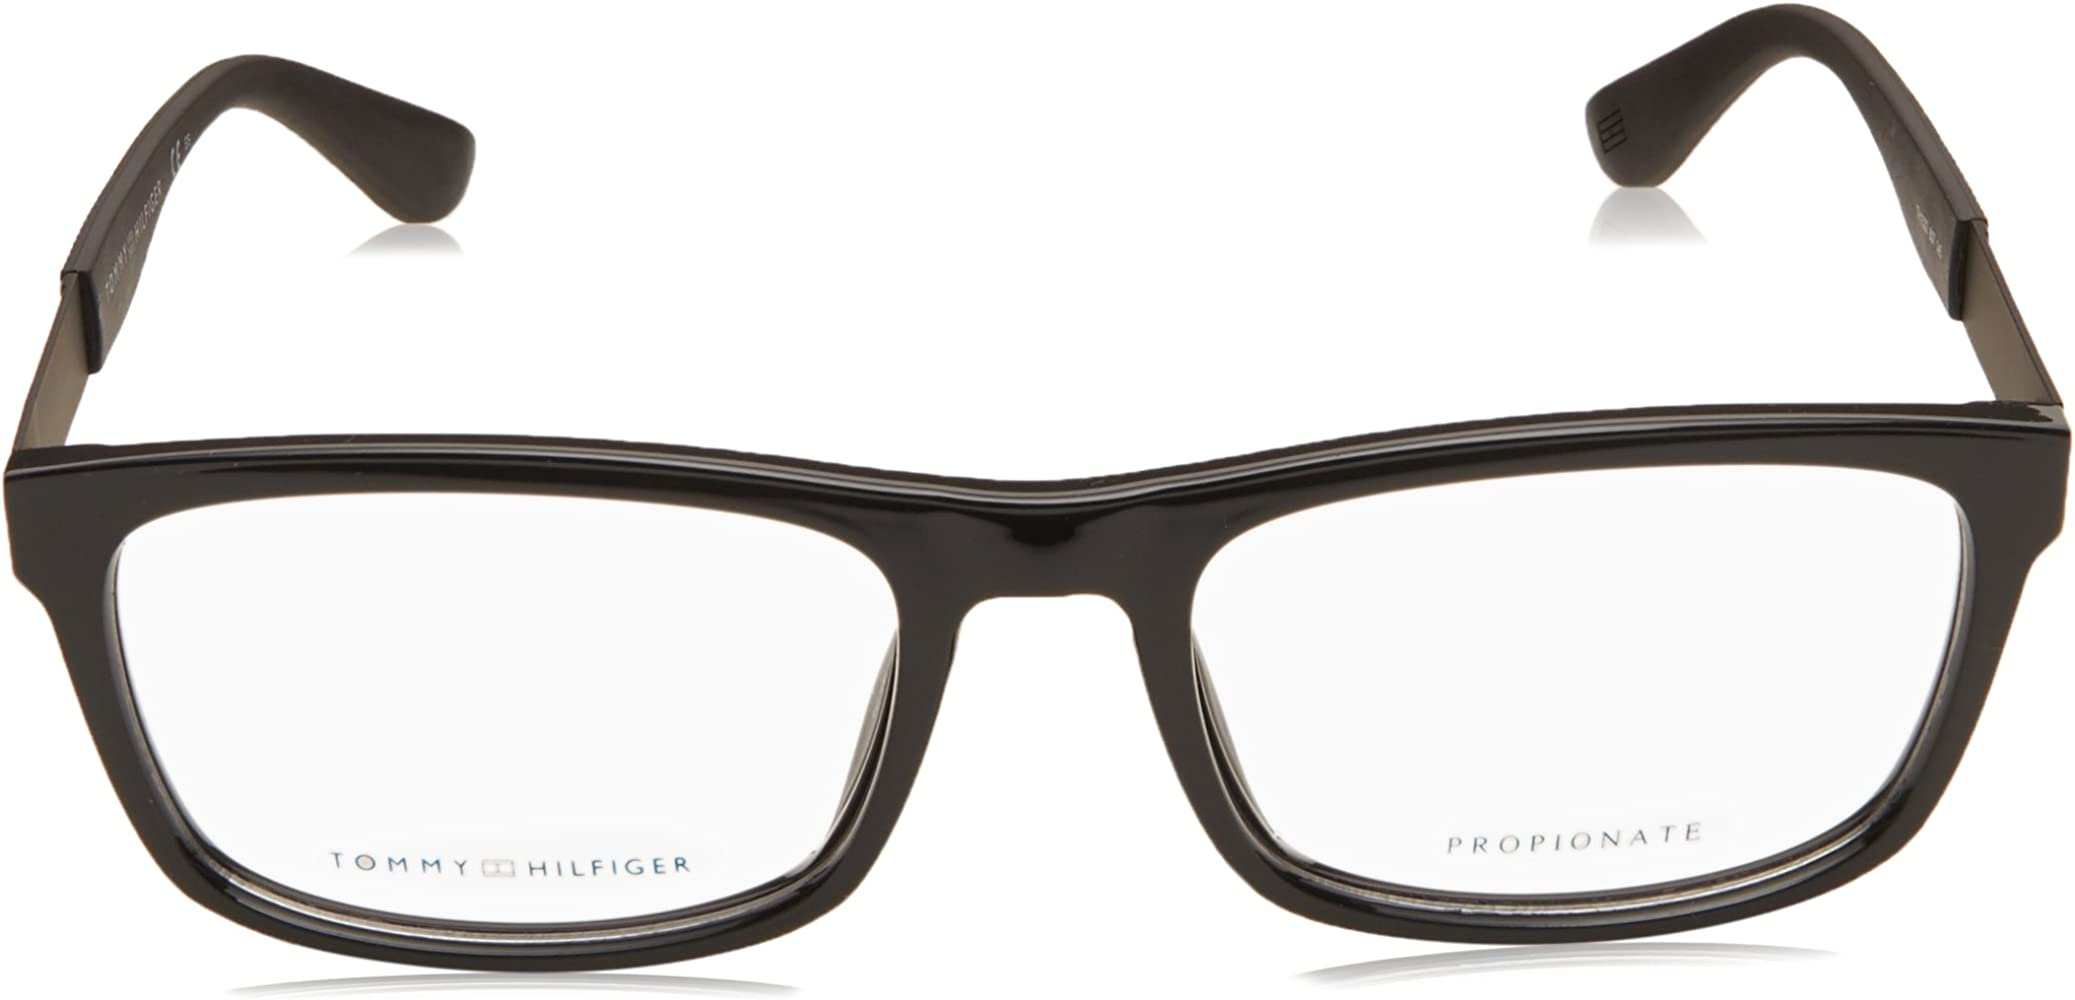 Tommy Hilfiger TH 1522 807 54 Gafas de Sol, Negro (Black ...